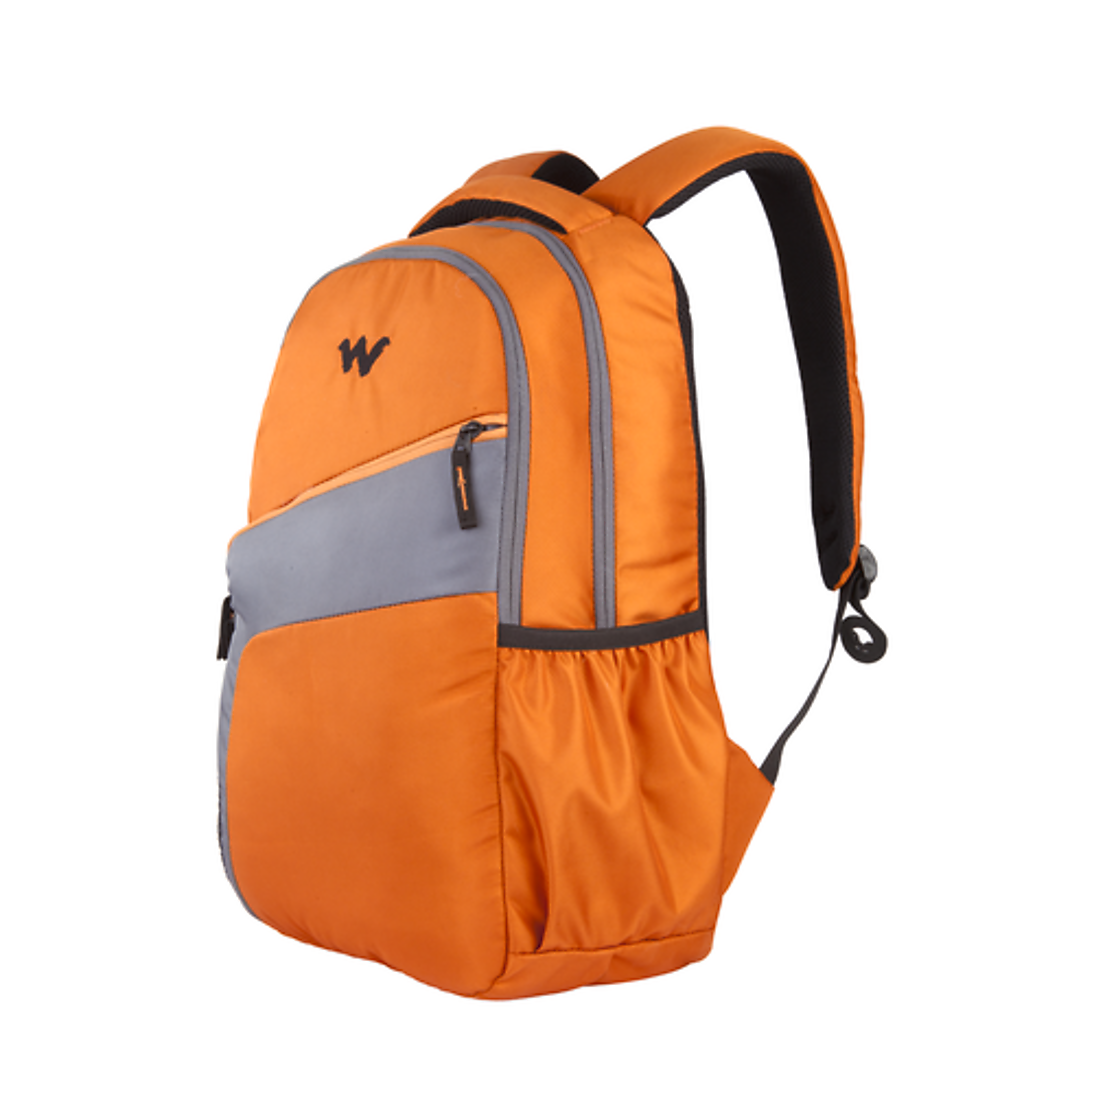 Wildcraft Virtuso Orange Laptop Bag